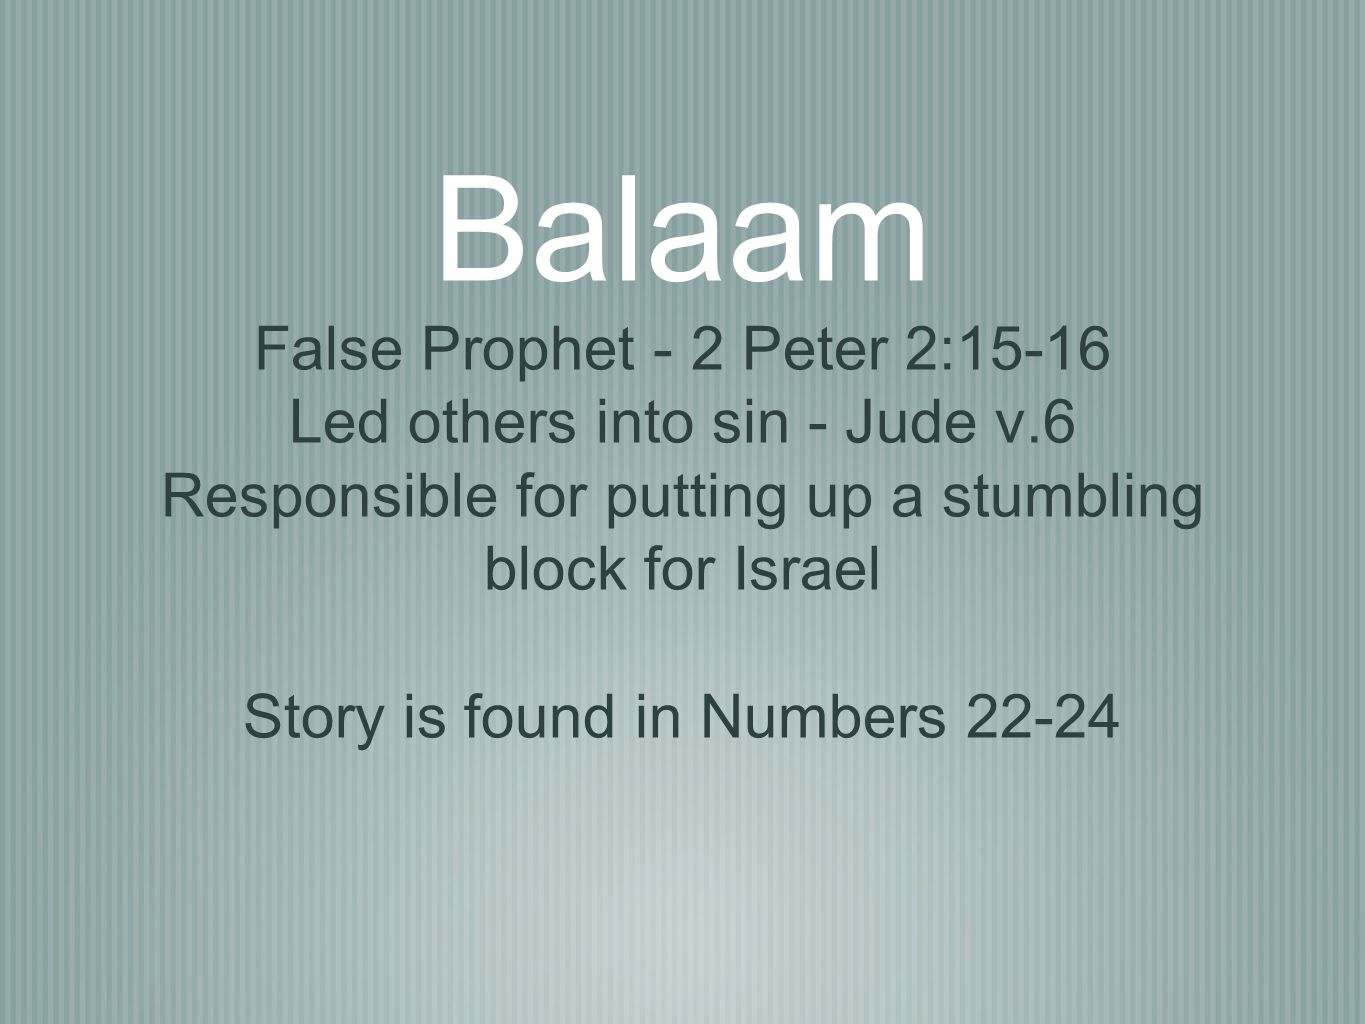 Balaam False Prophet - 2 Peter 2:15-16 Led others into sin - Jude v.6 Responsible for putting up a stumbling block for Israel Story is found in Number